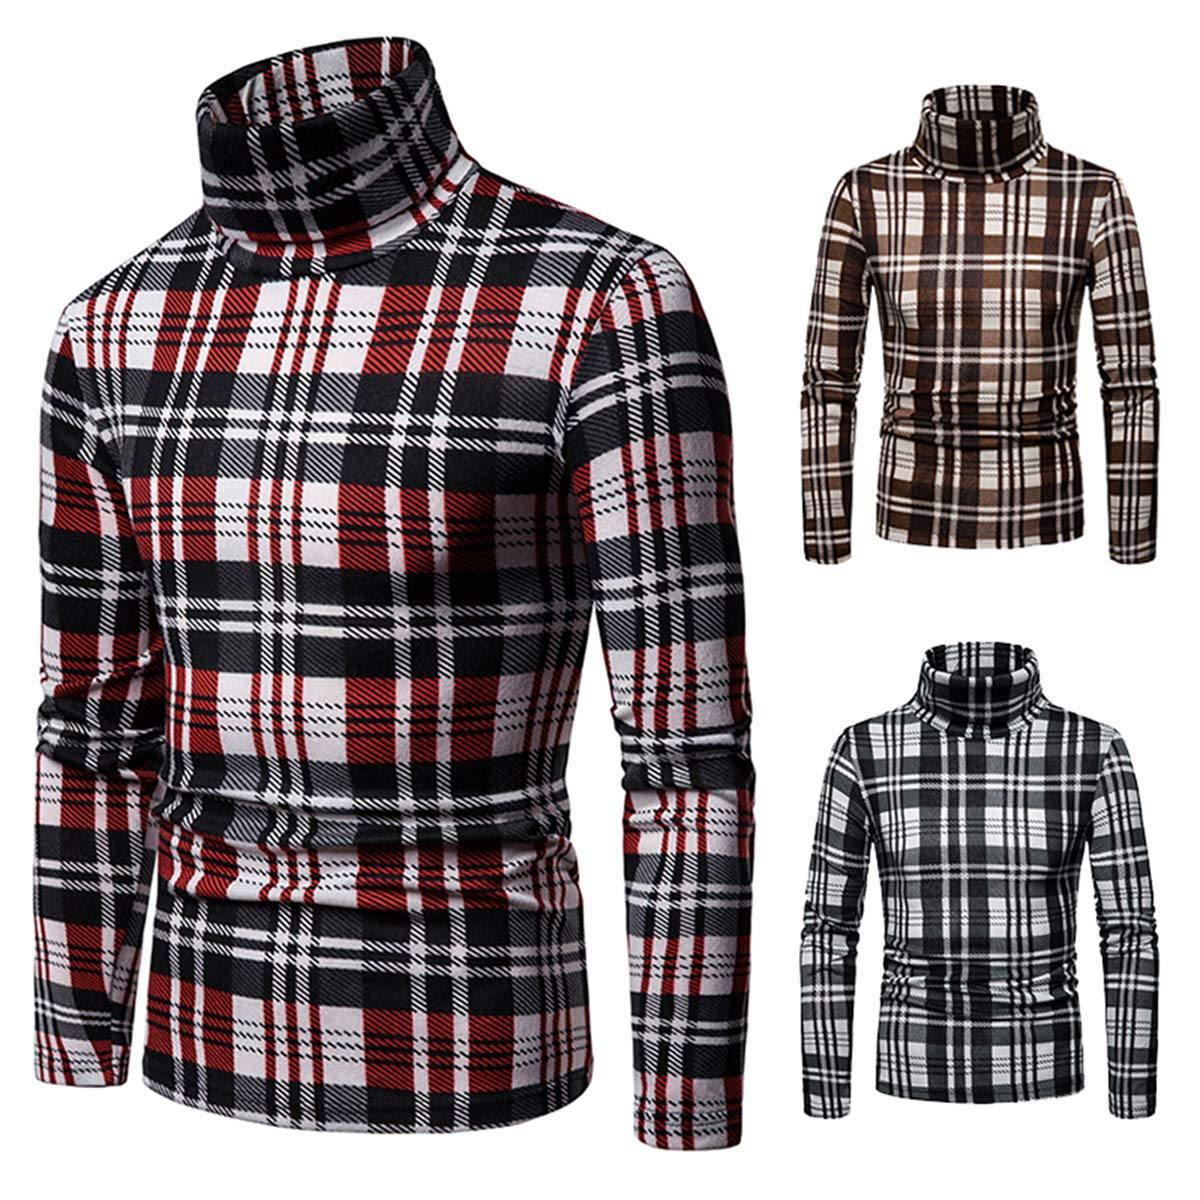 Mens High Collar Sweater Classic Plaid Long Sleeve Keep Warm Lightweight Fall Autumn Pullover Jumper Casual Regular Fit Top